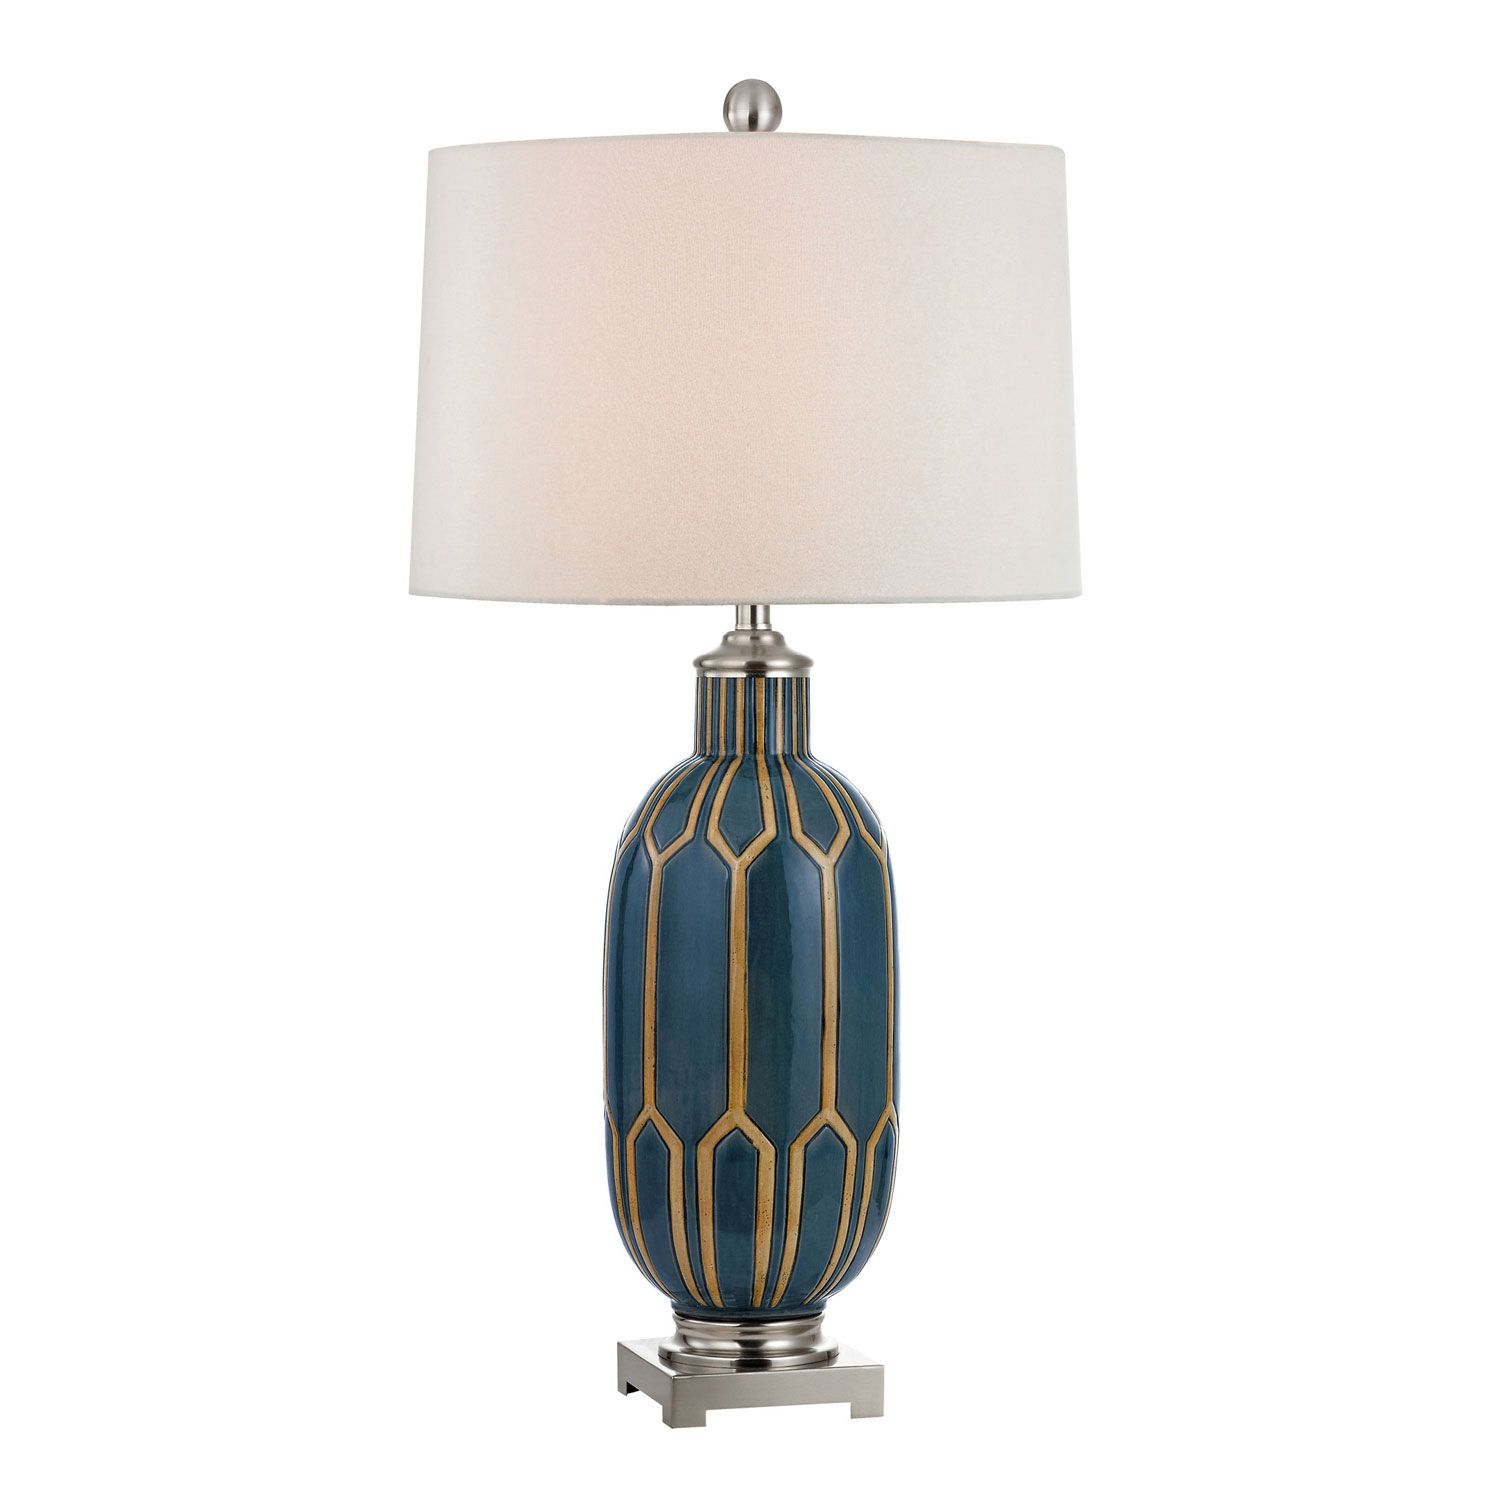 Good Blue 36 Inch Glazed Ceramic Table Lamp Dimond Accent Lamp Table Lamps Lamps